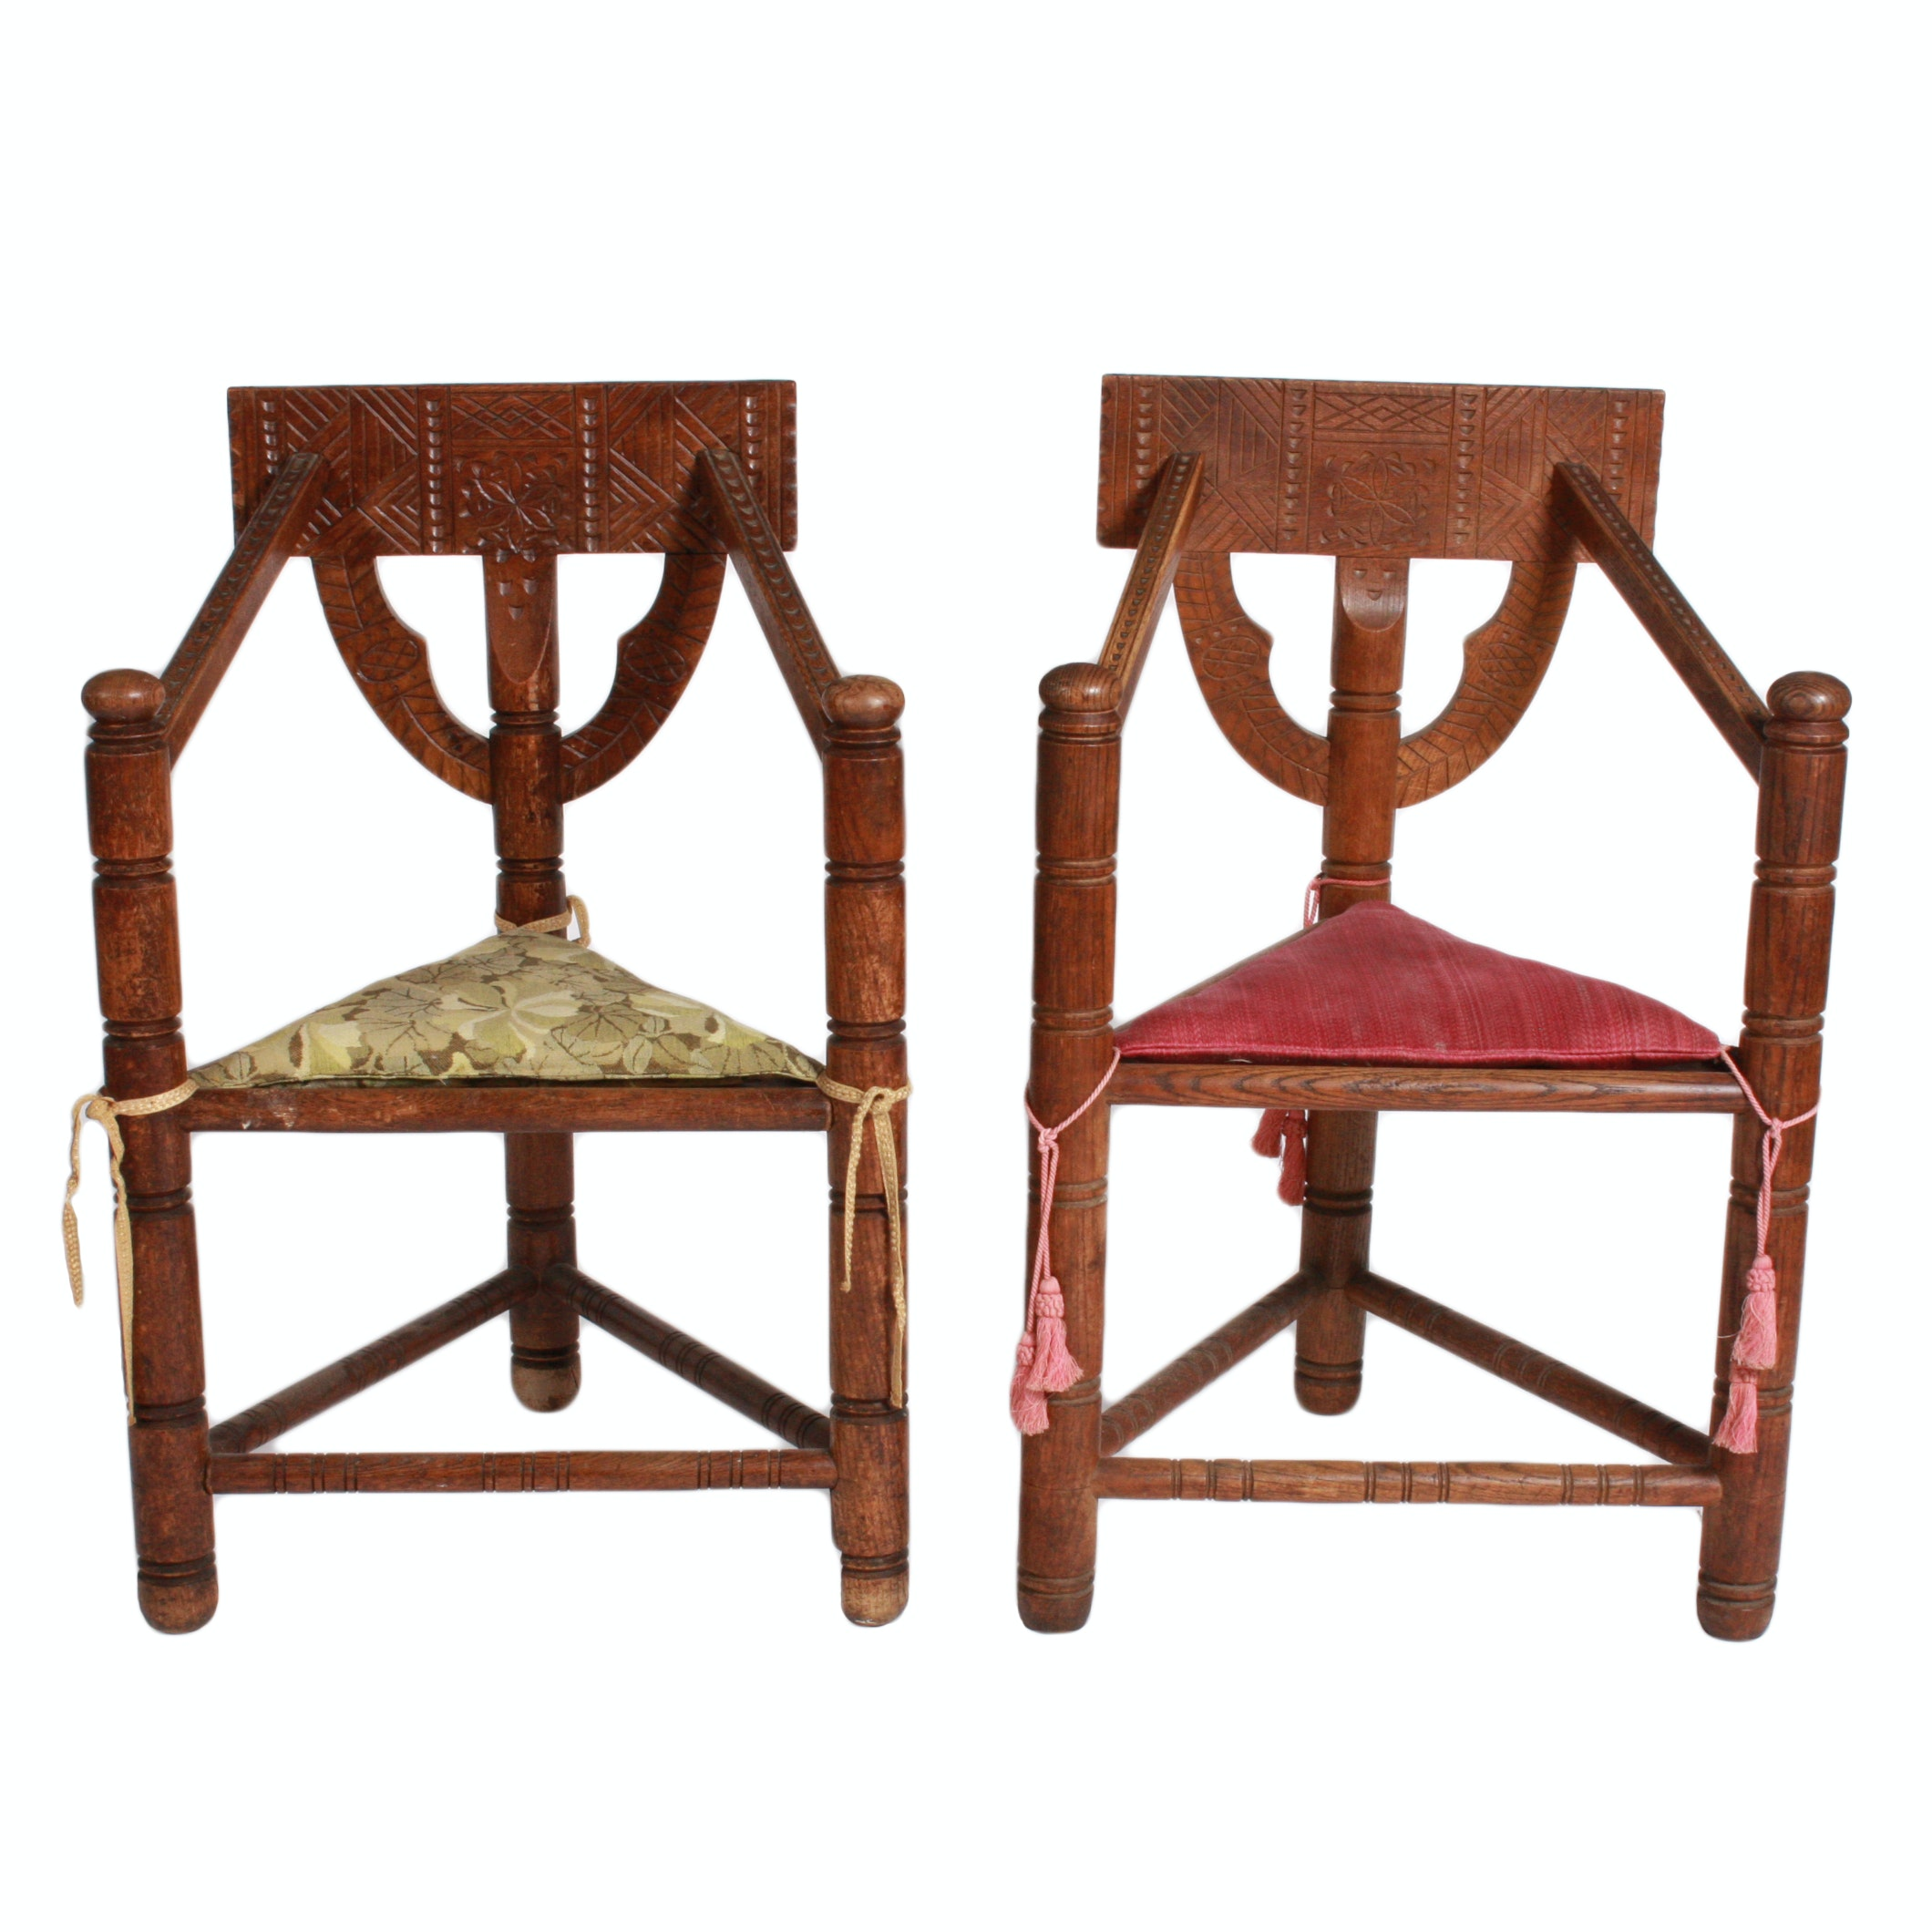 Pair of Swedish Chip-Carved Monk Chairs ...  sc 1 st  EBTH.com & Pair of Swedish Chip-Carved Monk Chairs